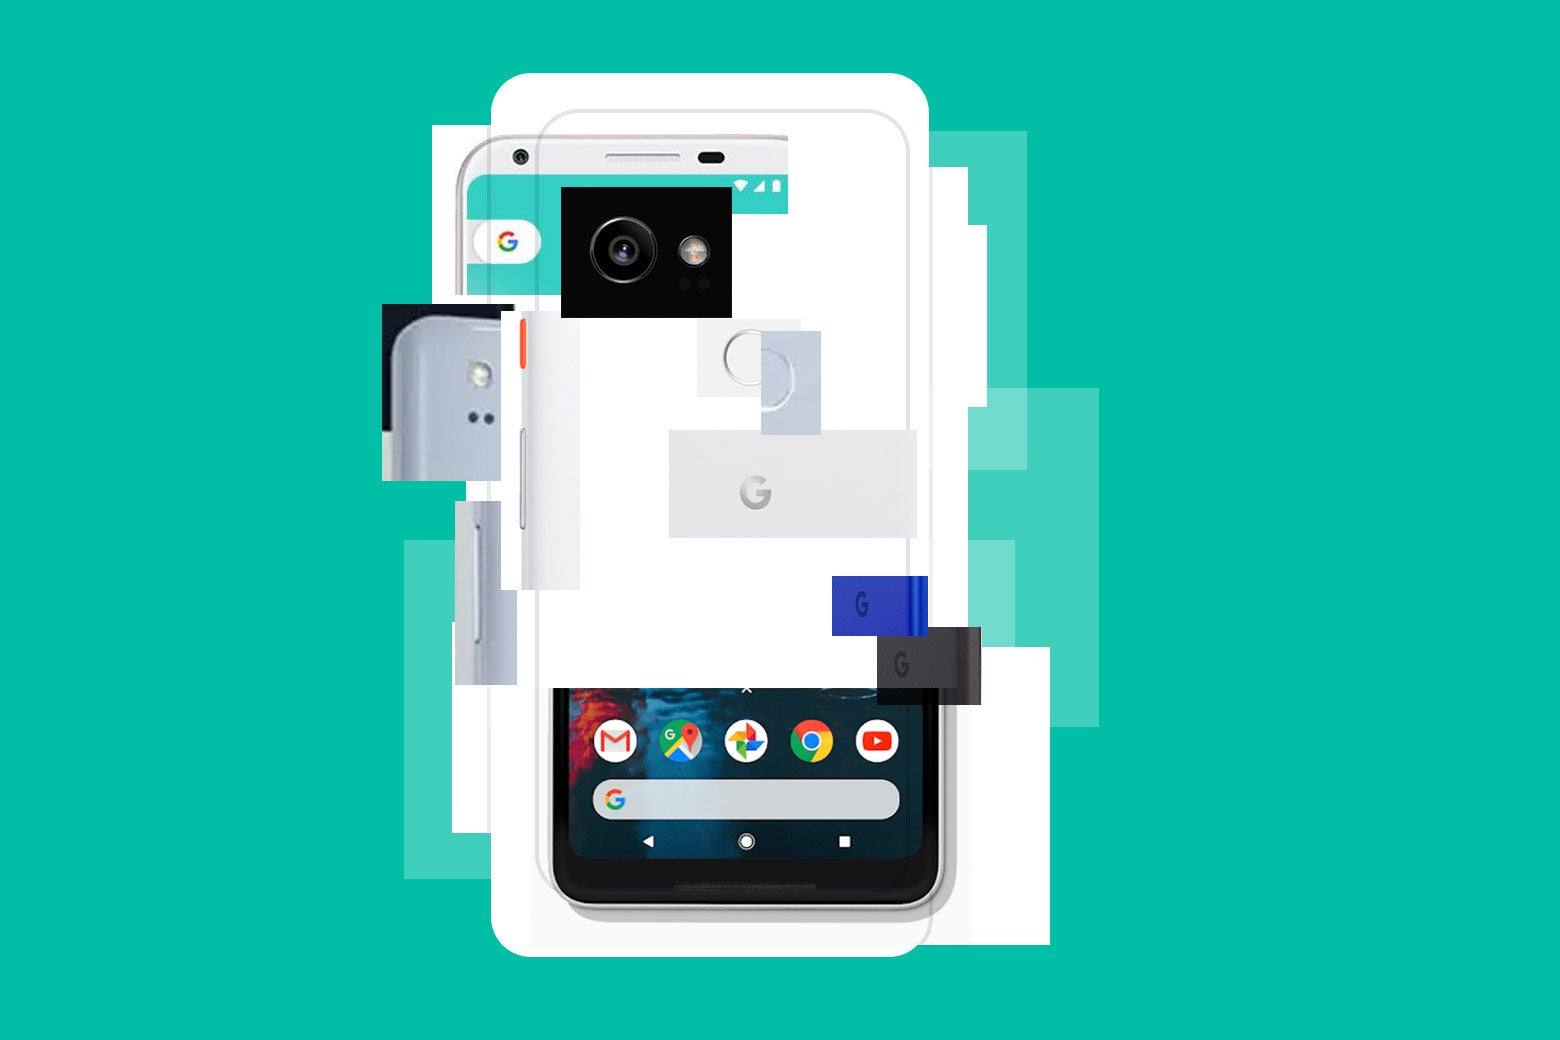 A Pixel phone made up of parts of previous Pixel models.